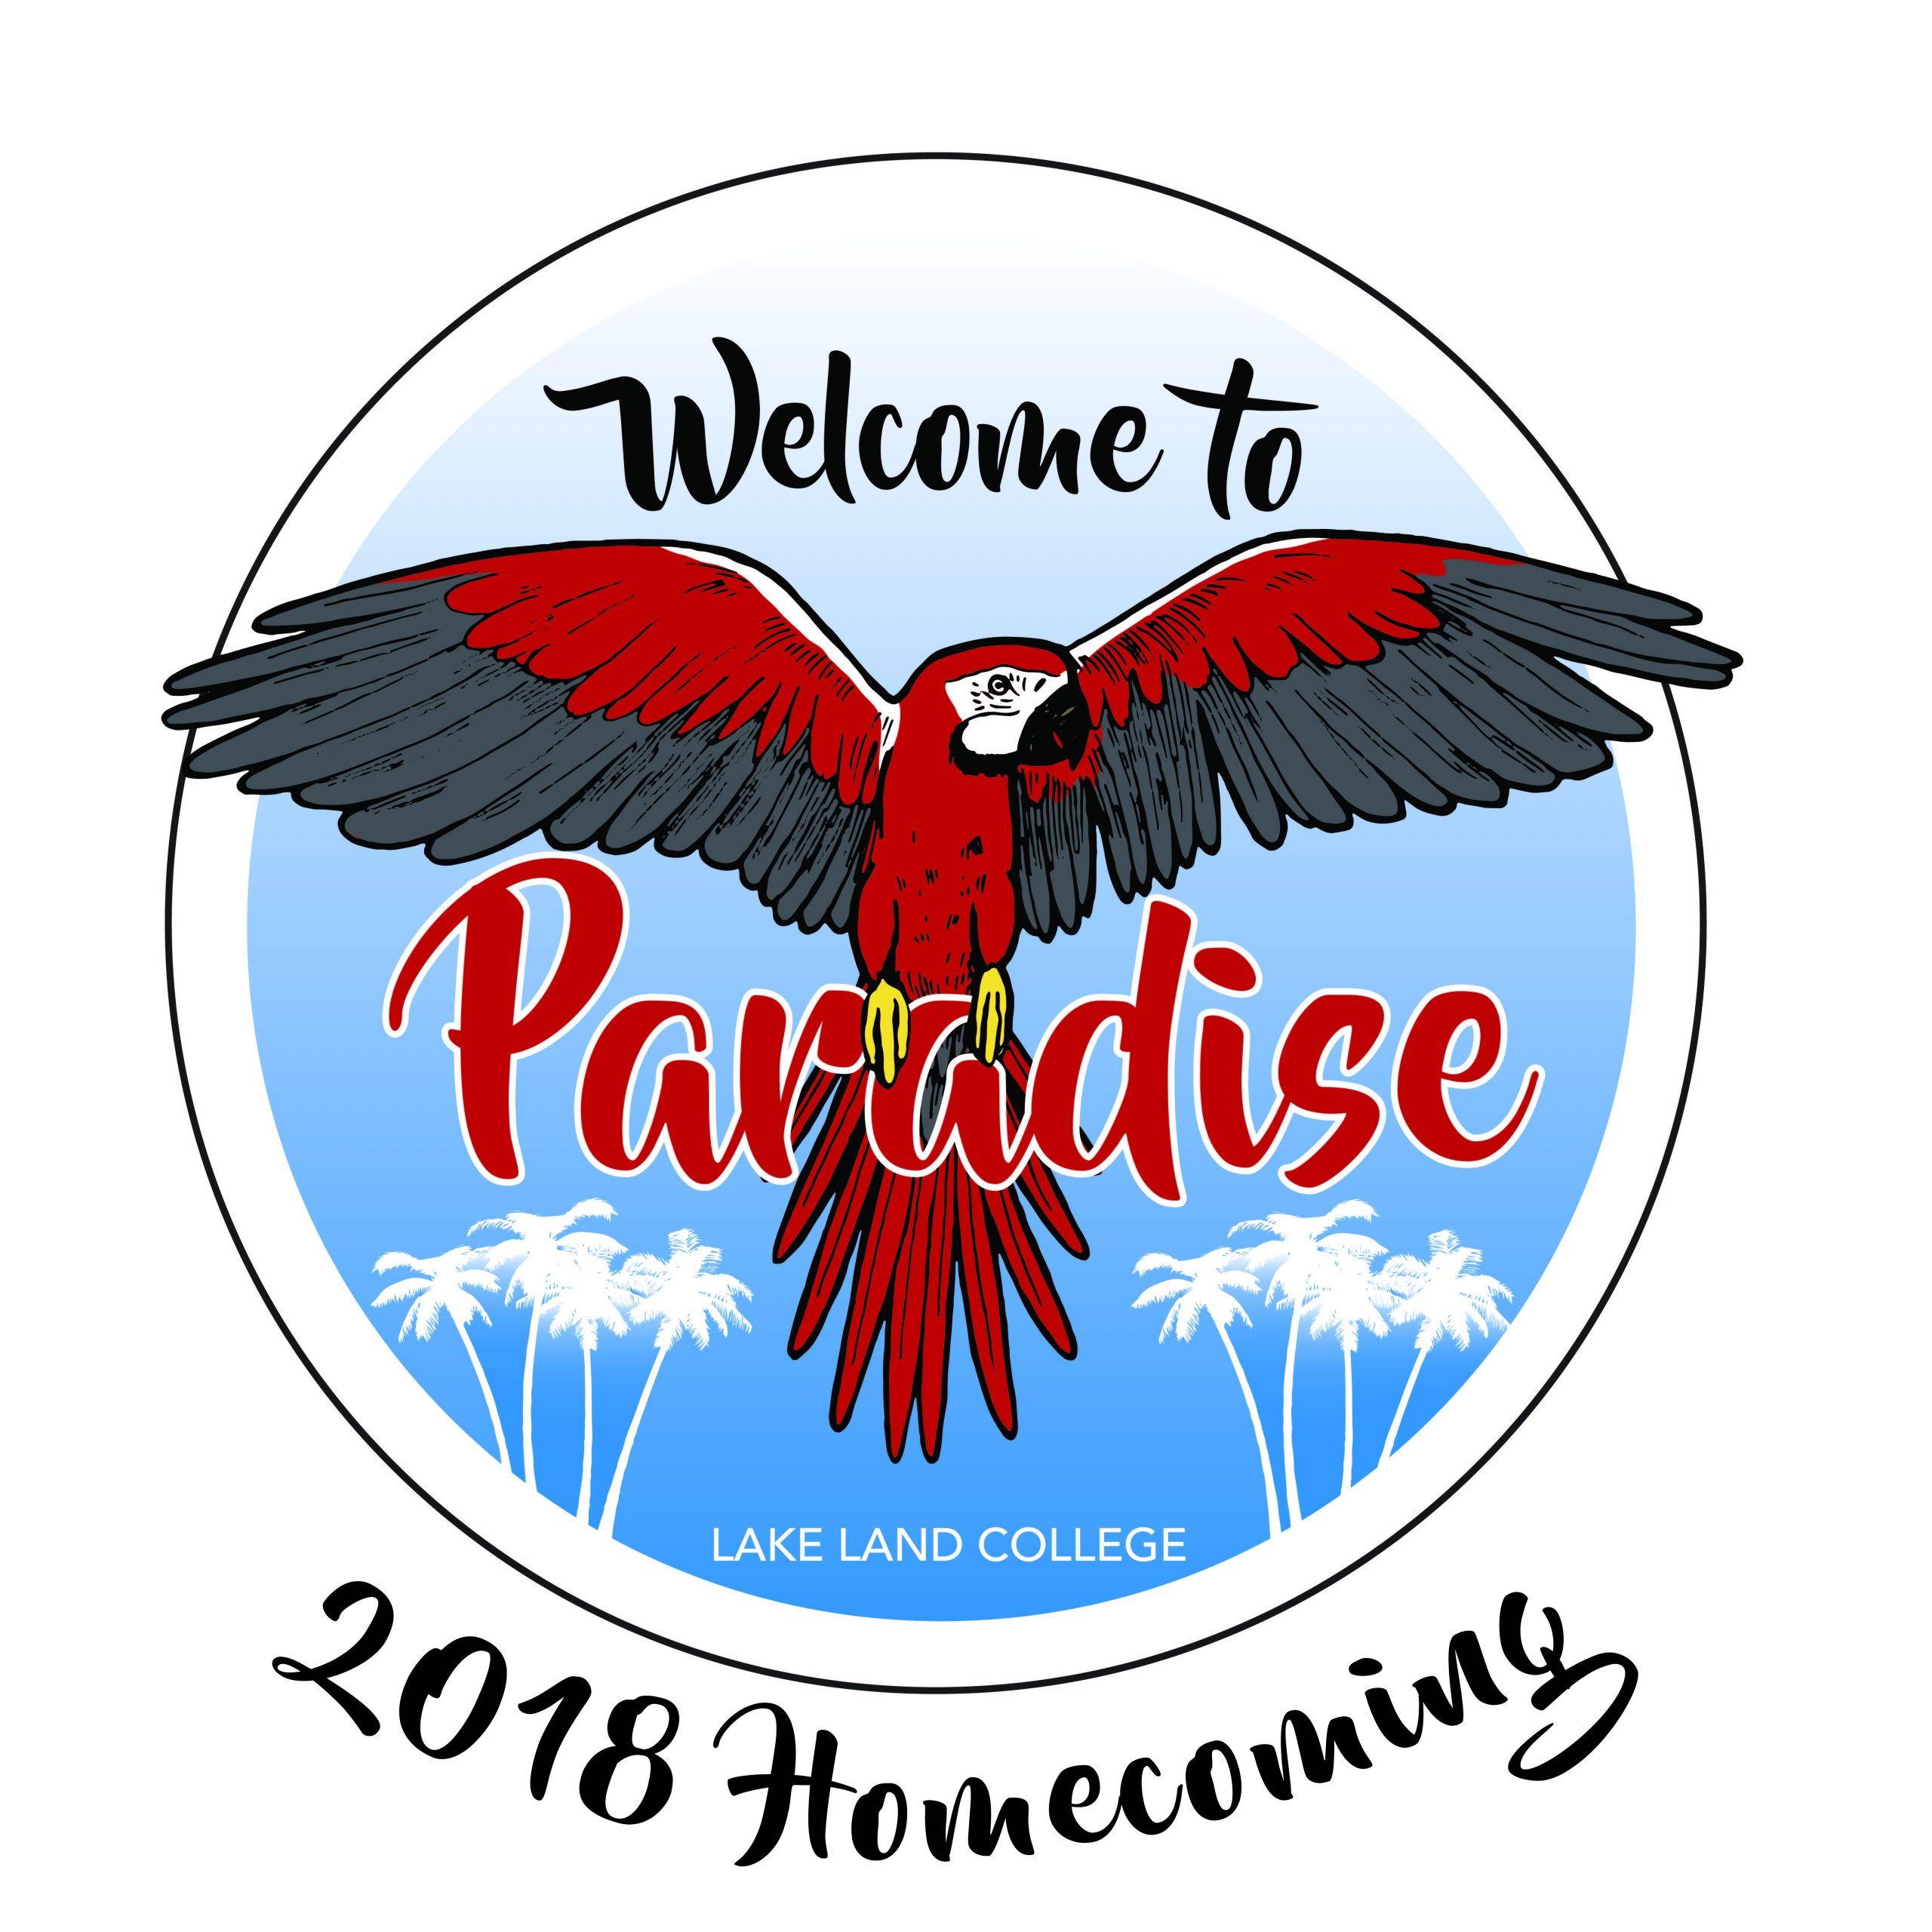 Lake Land College is Calling all Alumni Home to Celebrate Laker Homecoming